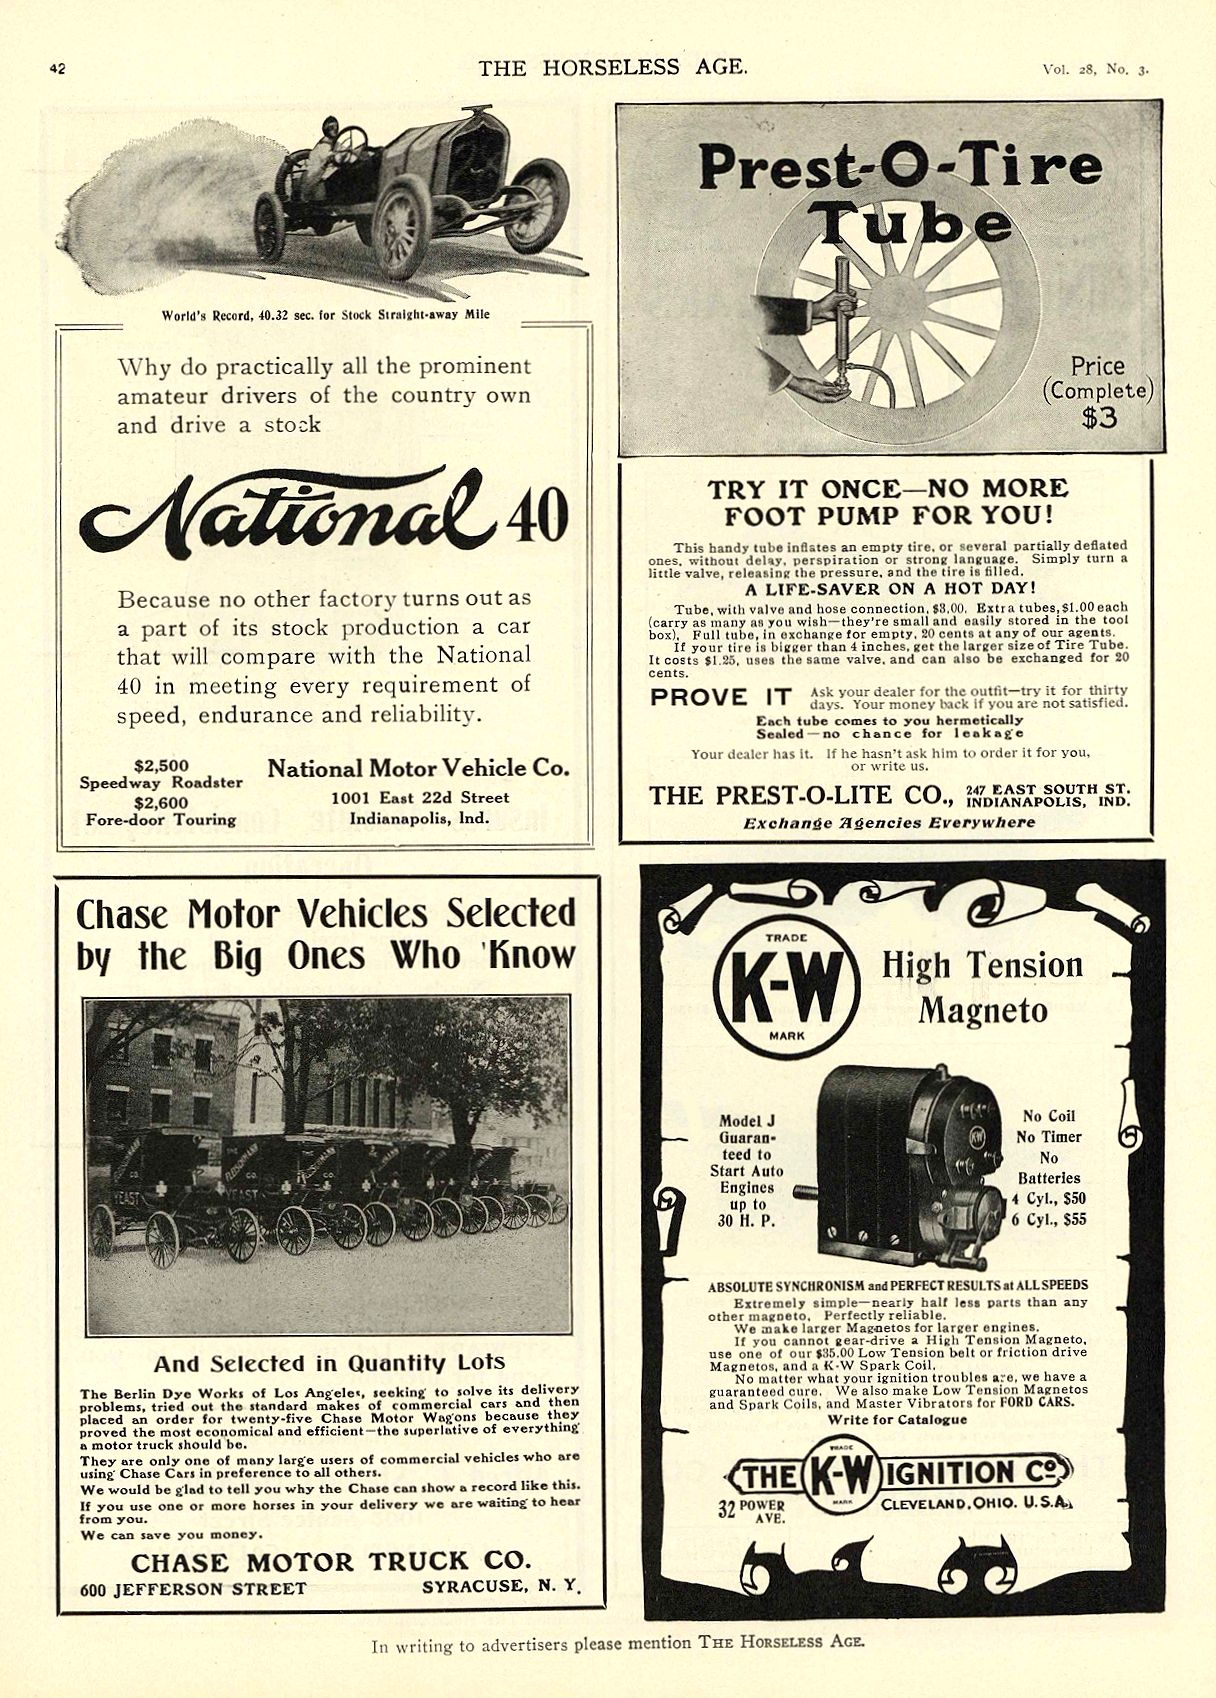 1911 7 19 NATIONAL National 40 $2,500 Speedway Roadster National Motor Vehicle Co. Indianapolis, IND THE HORSELESS AGE July 19, 1911 8.5″x11.75″ page 42